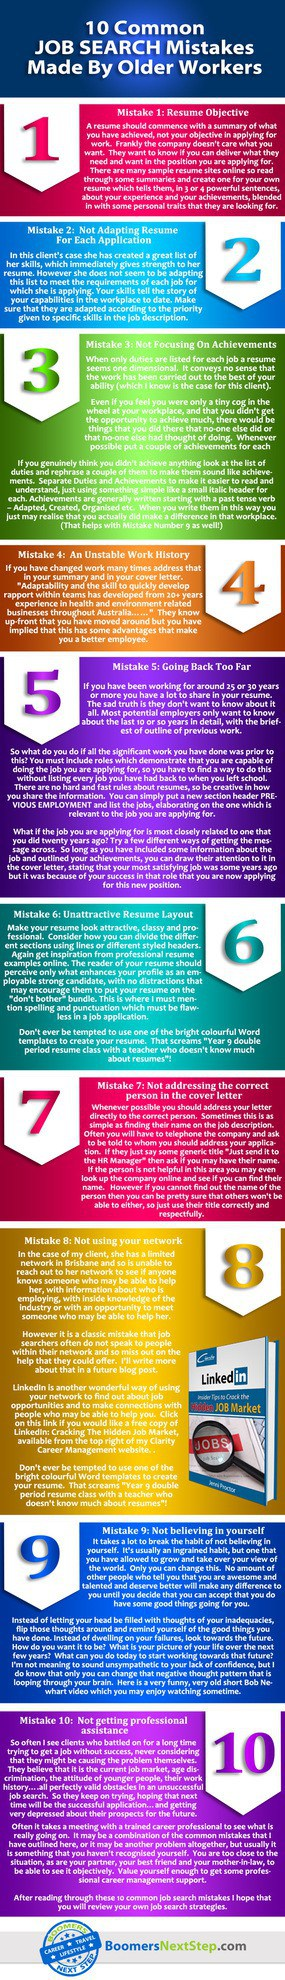 Infographic - 10 common mistakes made by older workers